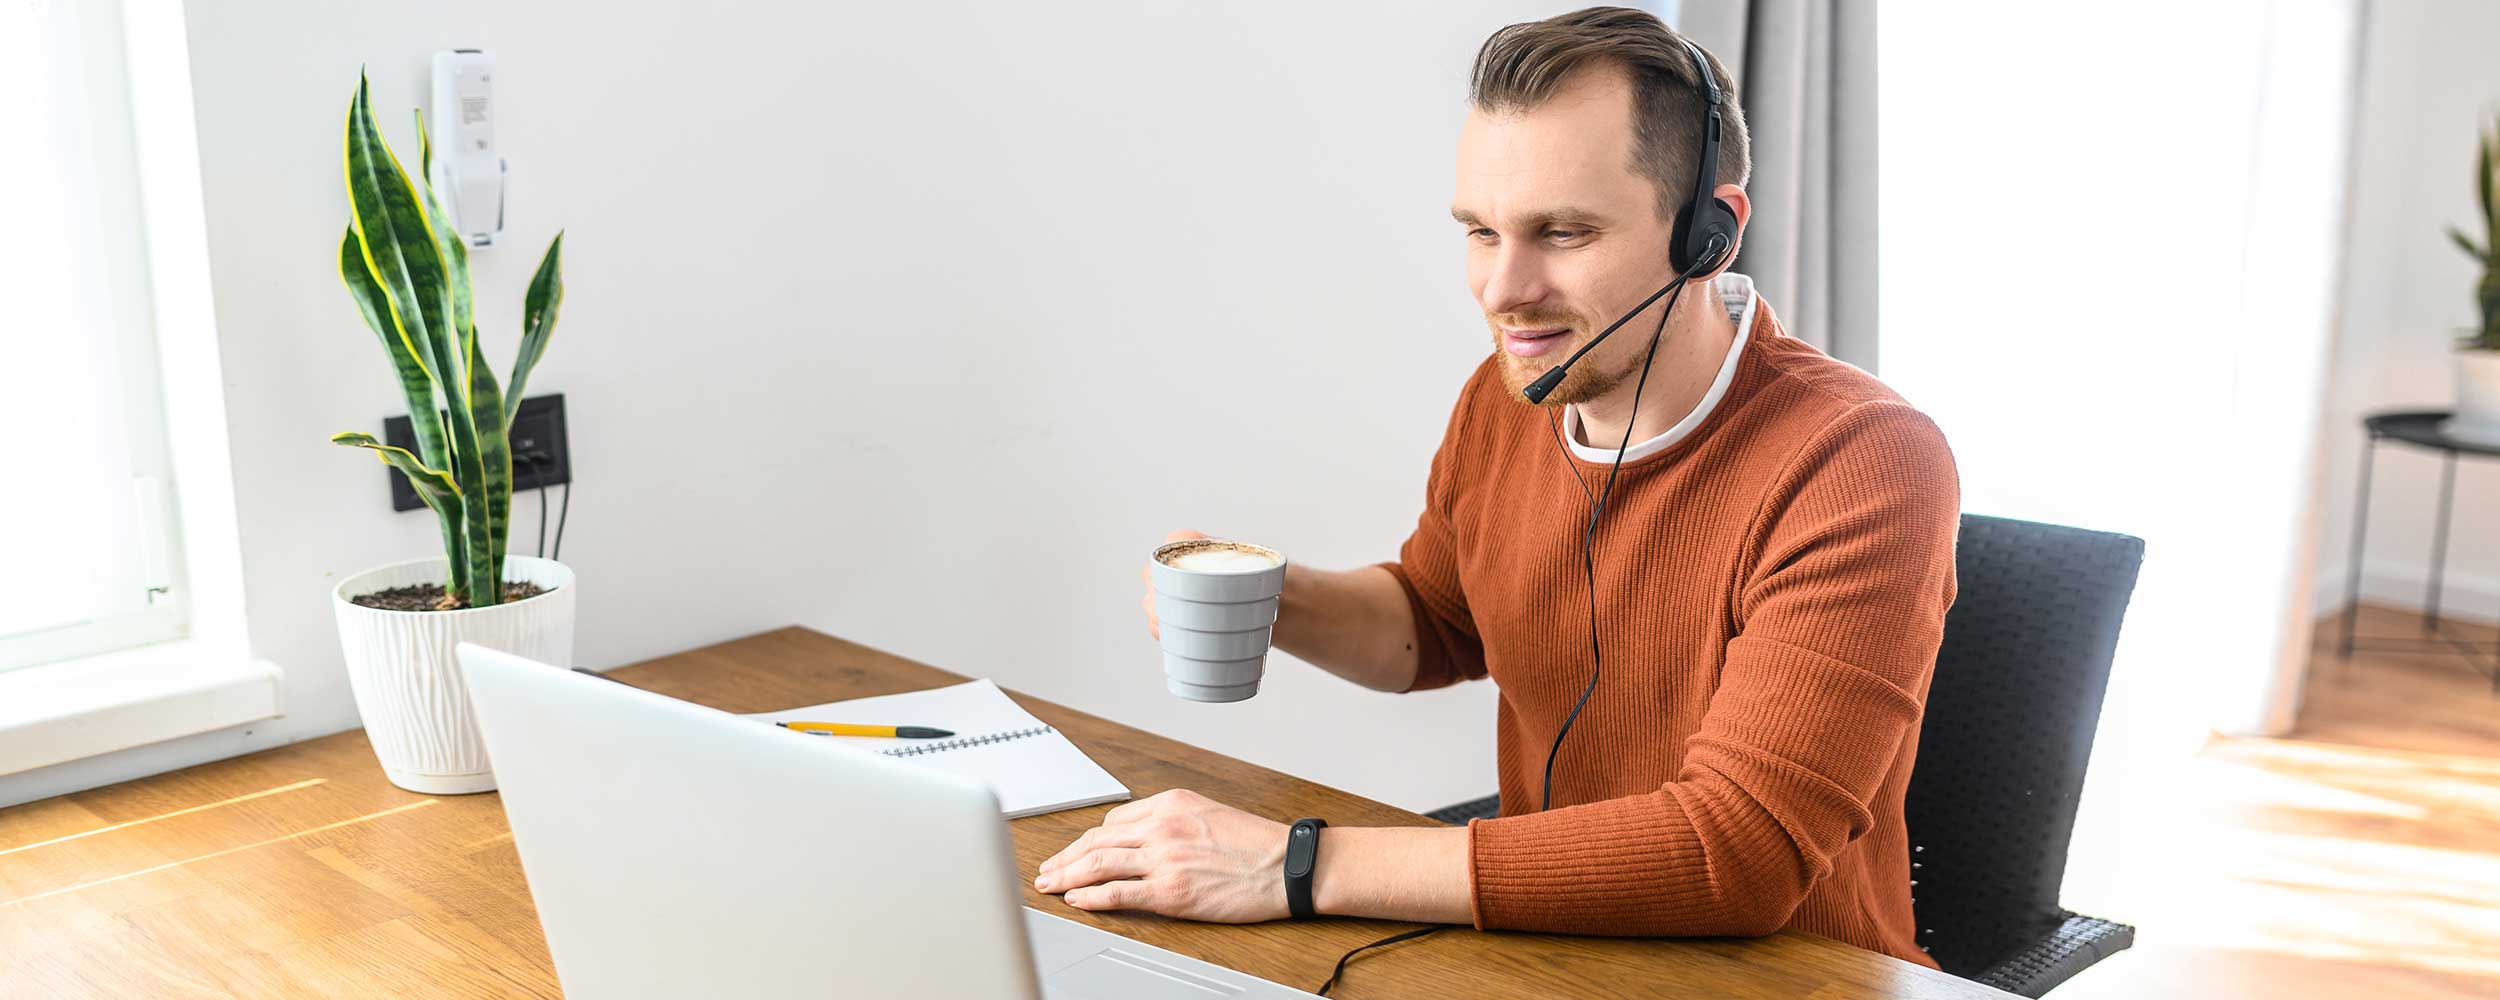 Blog: 3 Ways What We've Learned About Remote Work Will Change IT Support Forever